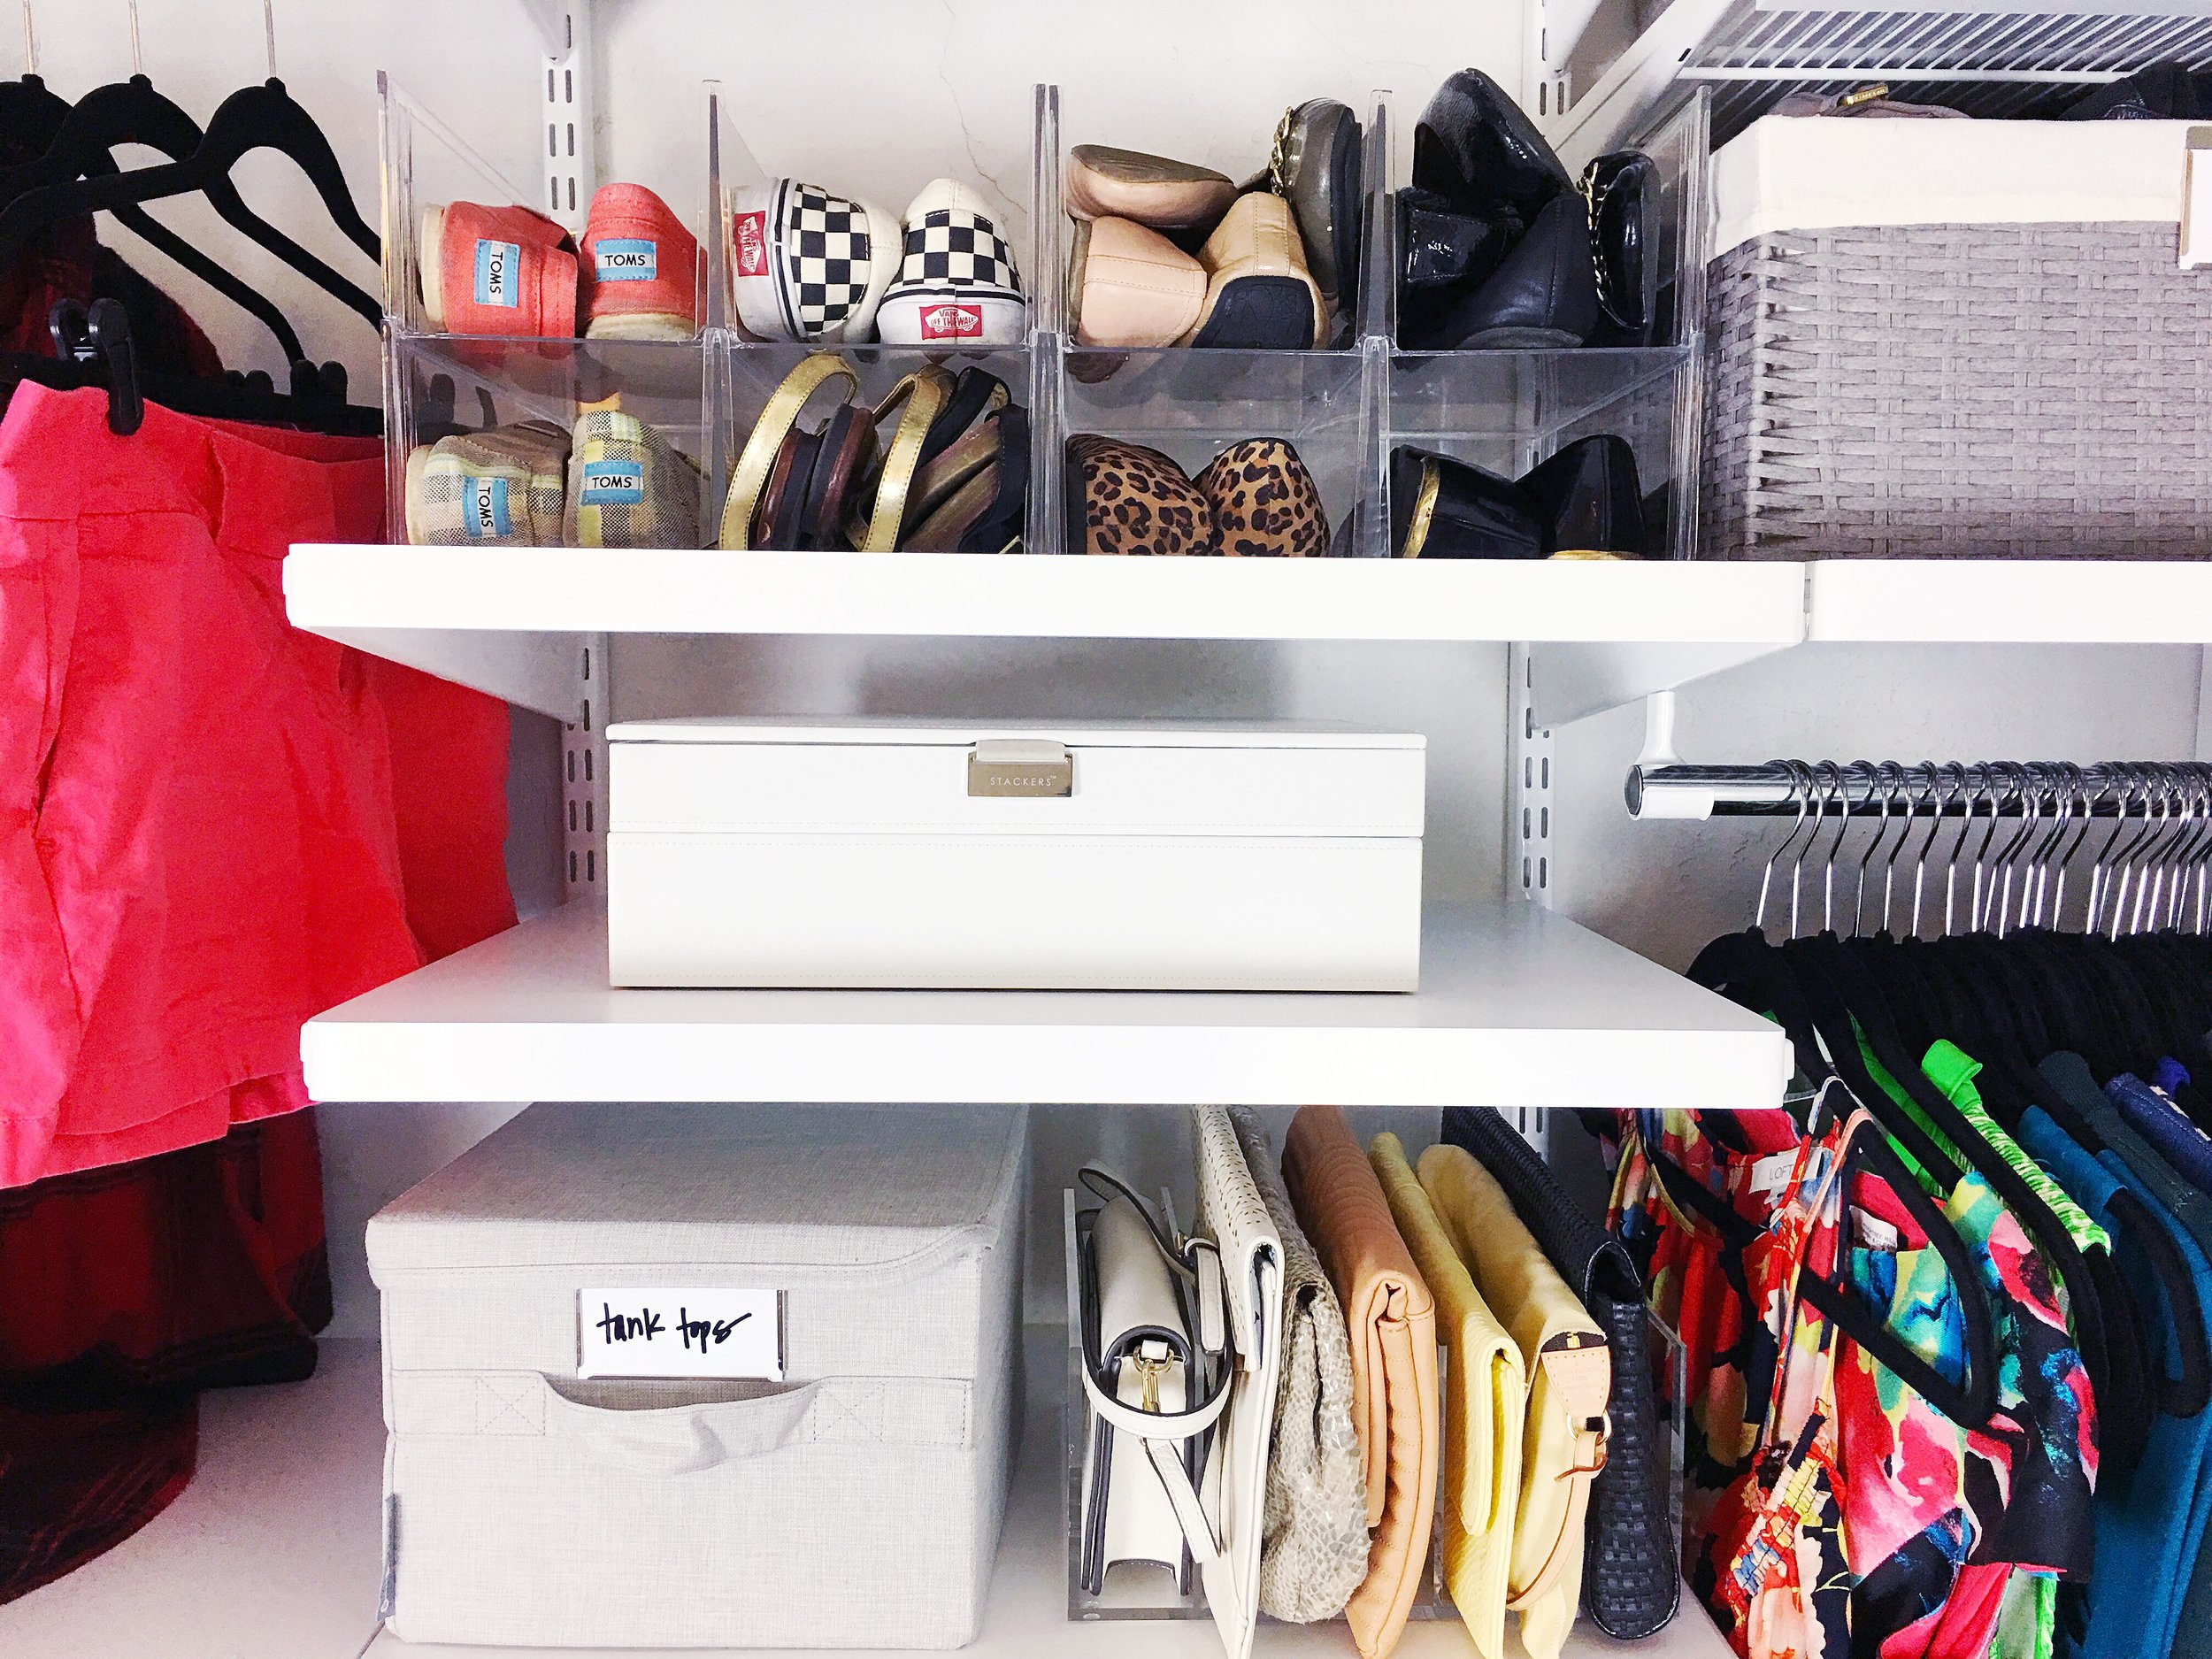 shoe, jewelry, and clutch organization